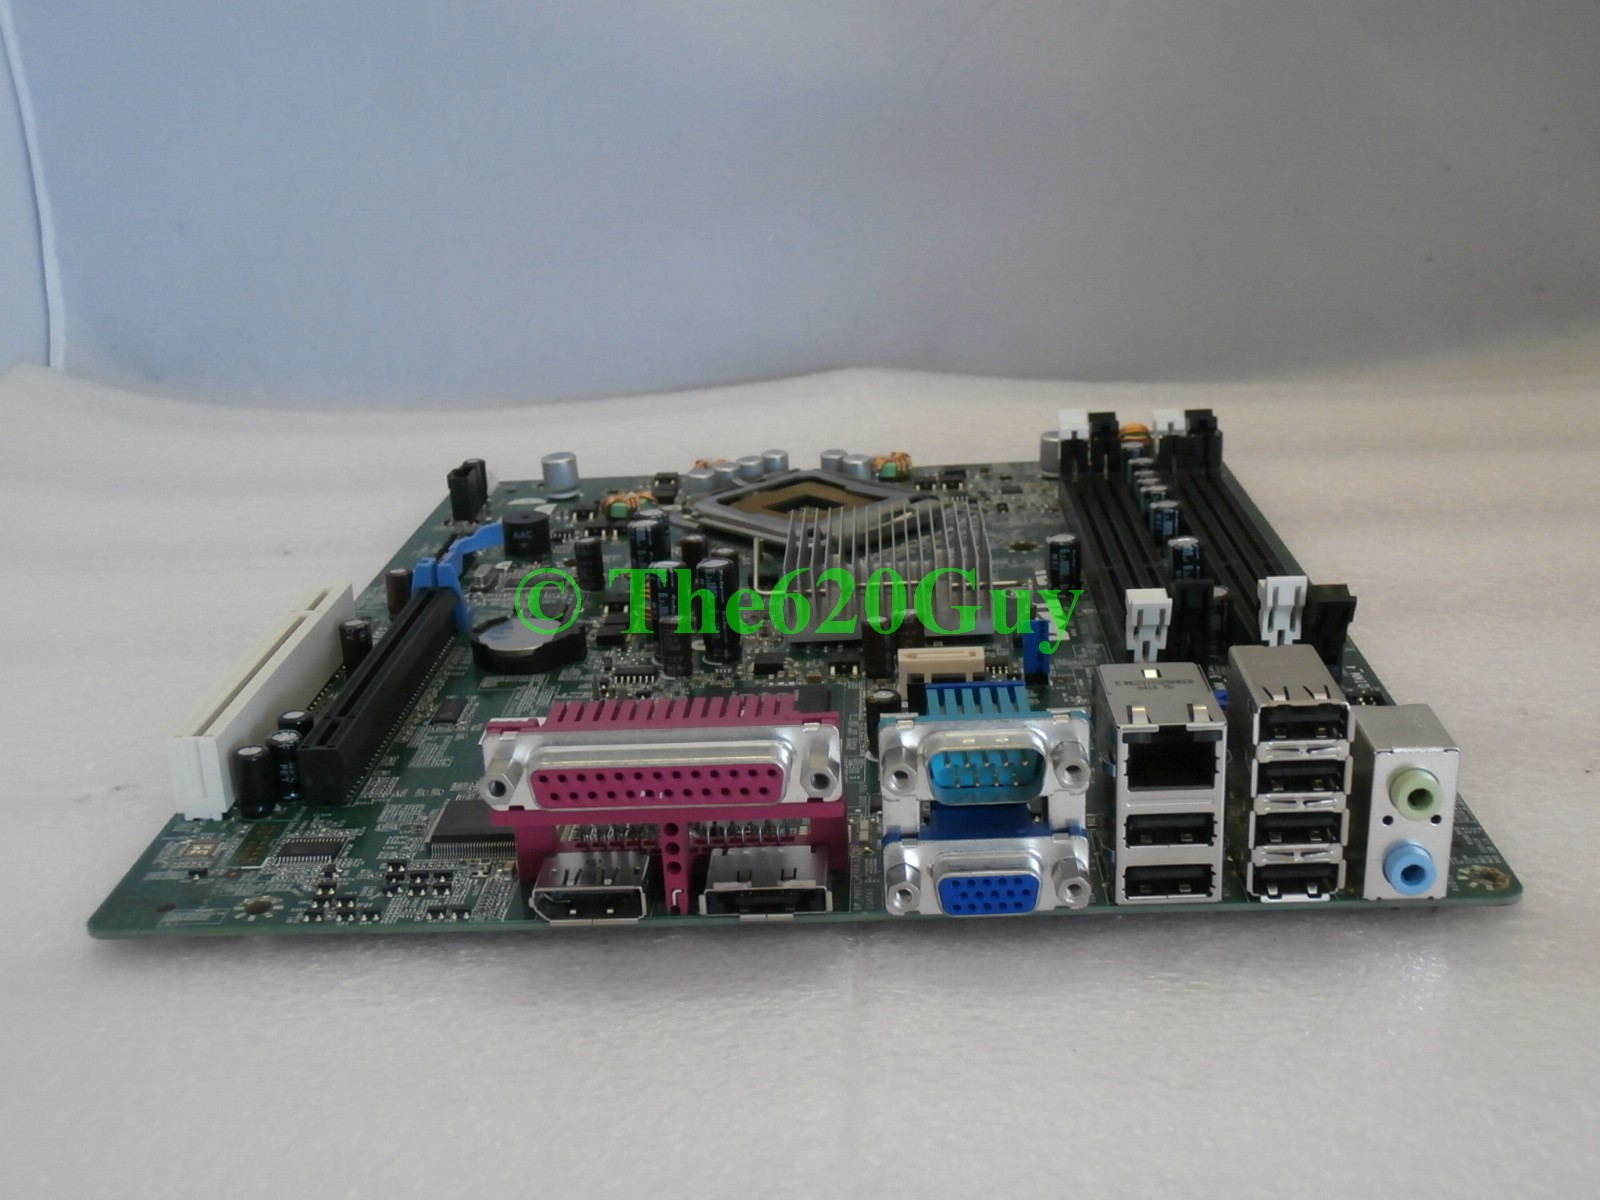 dell optiplex 780 sff q45 motherboard dtx system board 3nvj6 03nvj6 cn 03nvj6 dell optiplex 780 small form factor manual dell 780 sff motherboard